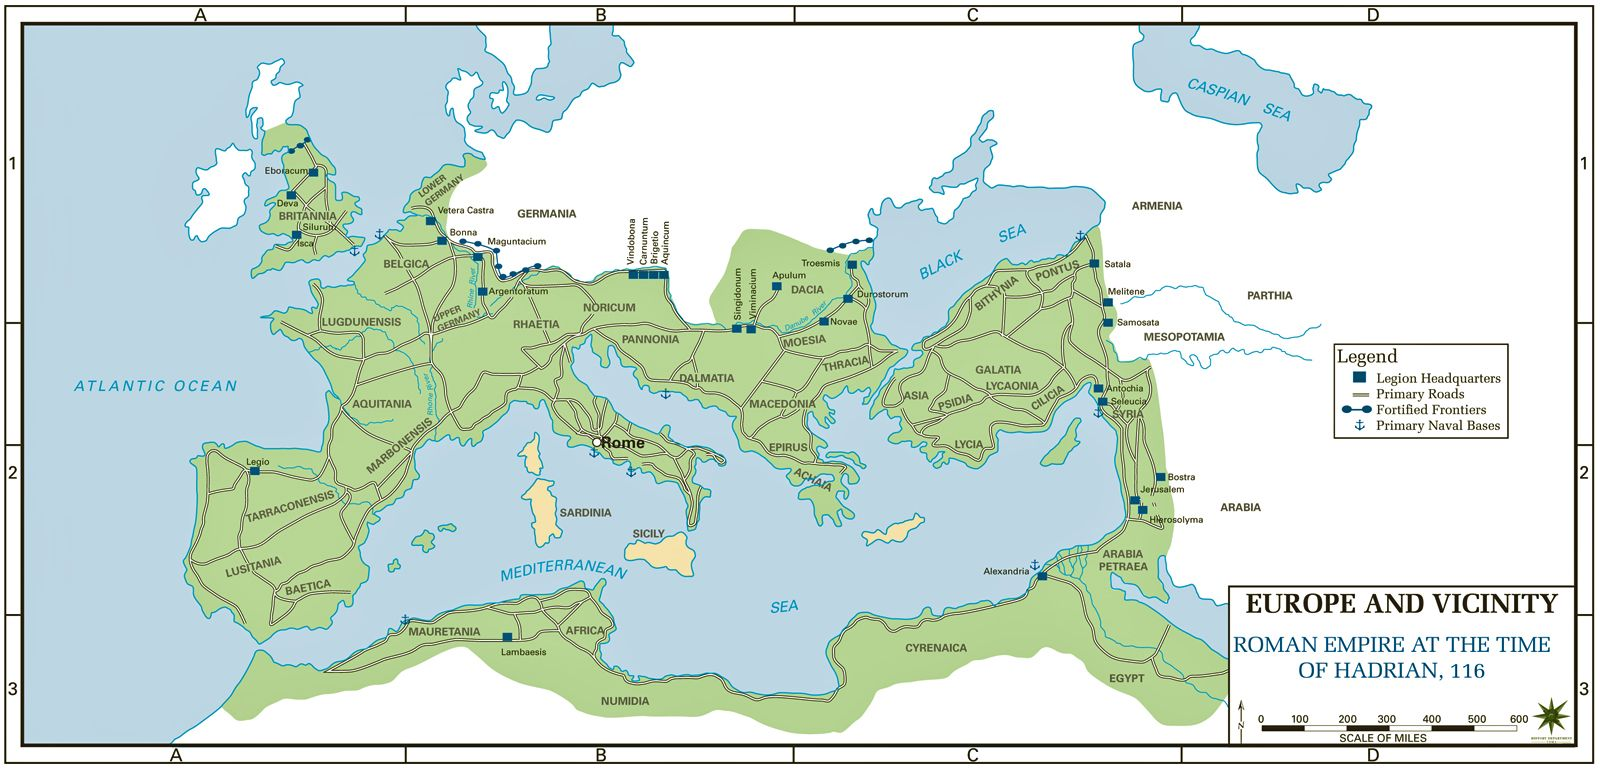 Map of the Roman Empire AD 117   Historical maps, Roman ... Map Of The Ancient Roman Empire Boundaries on boundaries of ancient syria, boundaries of ancient india, boundaries of ancient edom, boundaries of ancient egypt, boundaries of ancient china, boundaries of ancient phoenicia, boundaries of ancient israel, boundaries of ancient jerusalem,